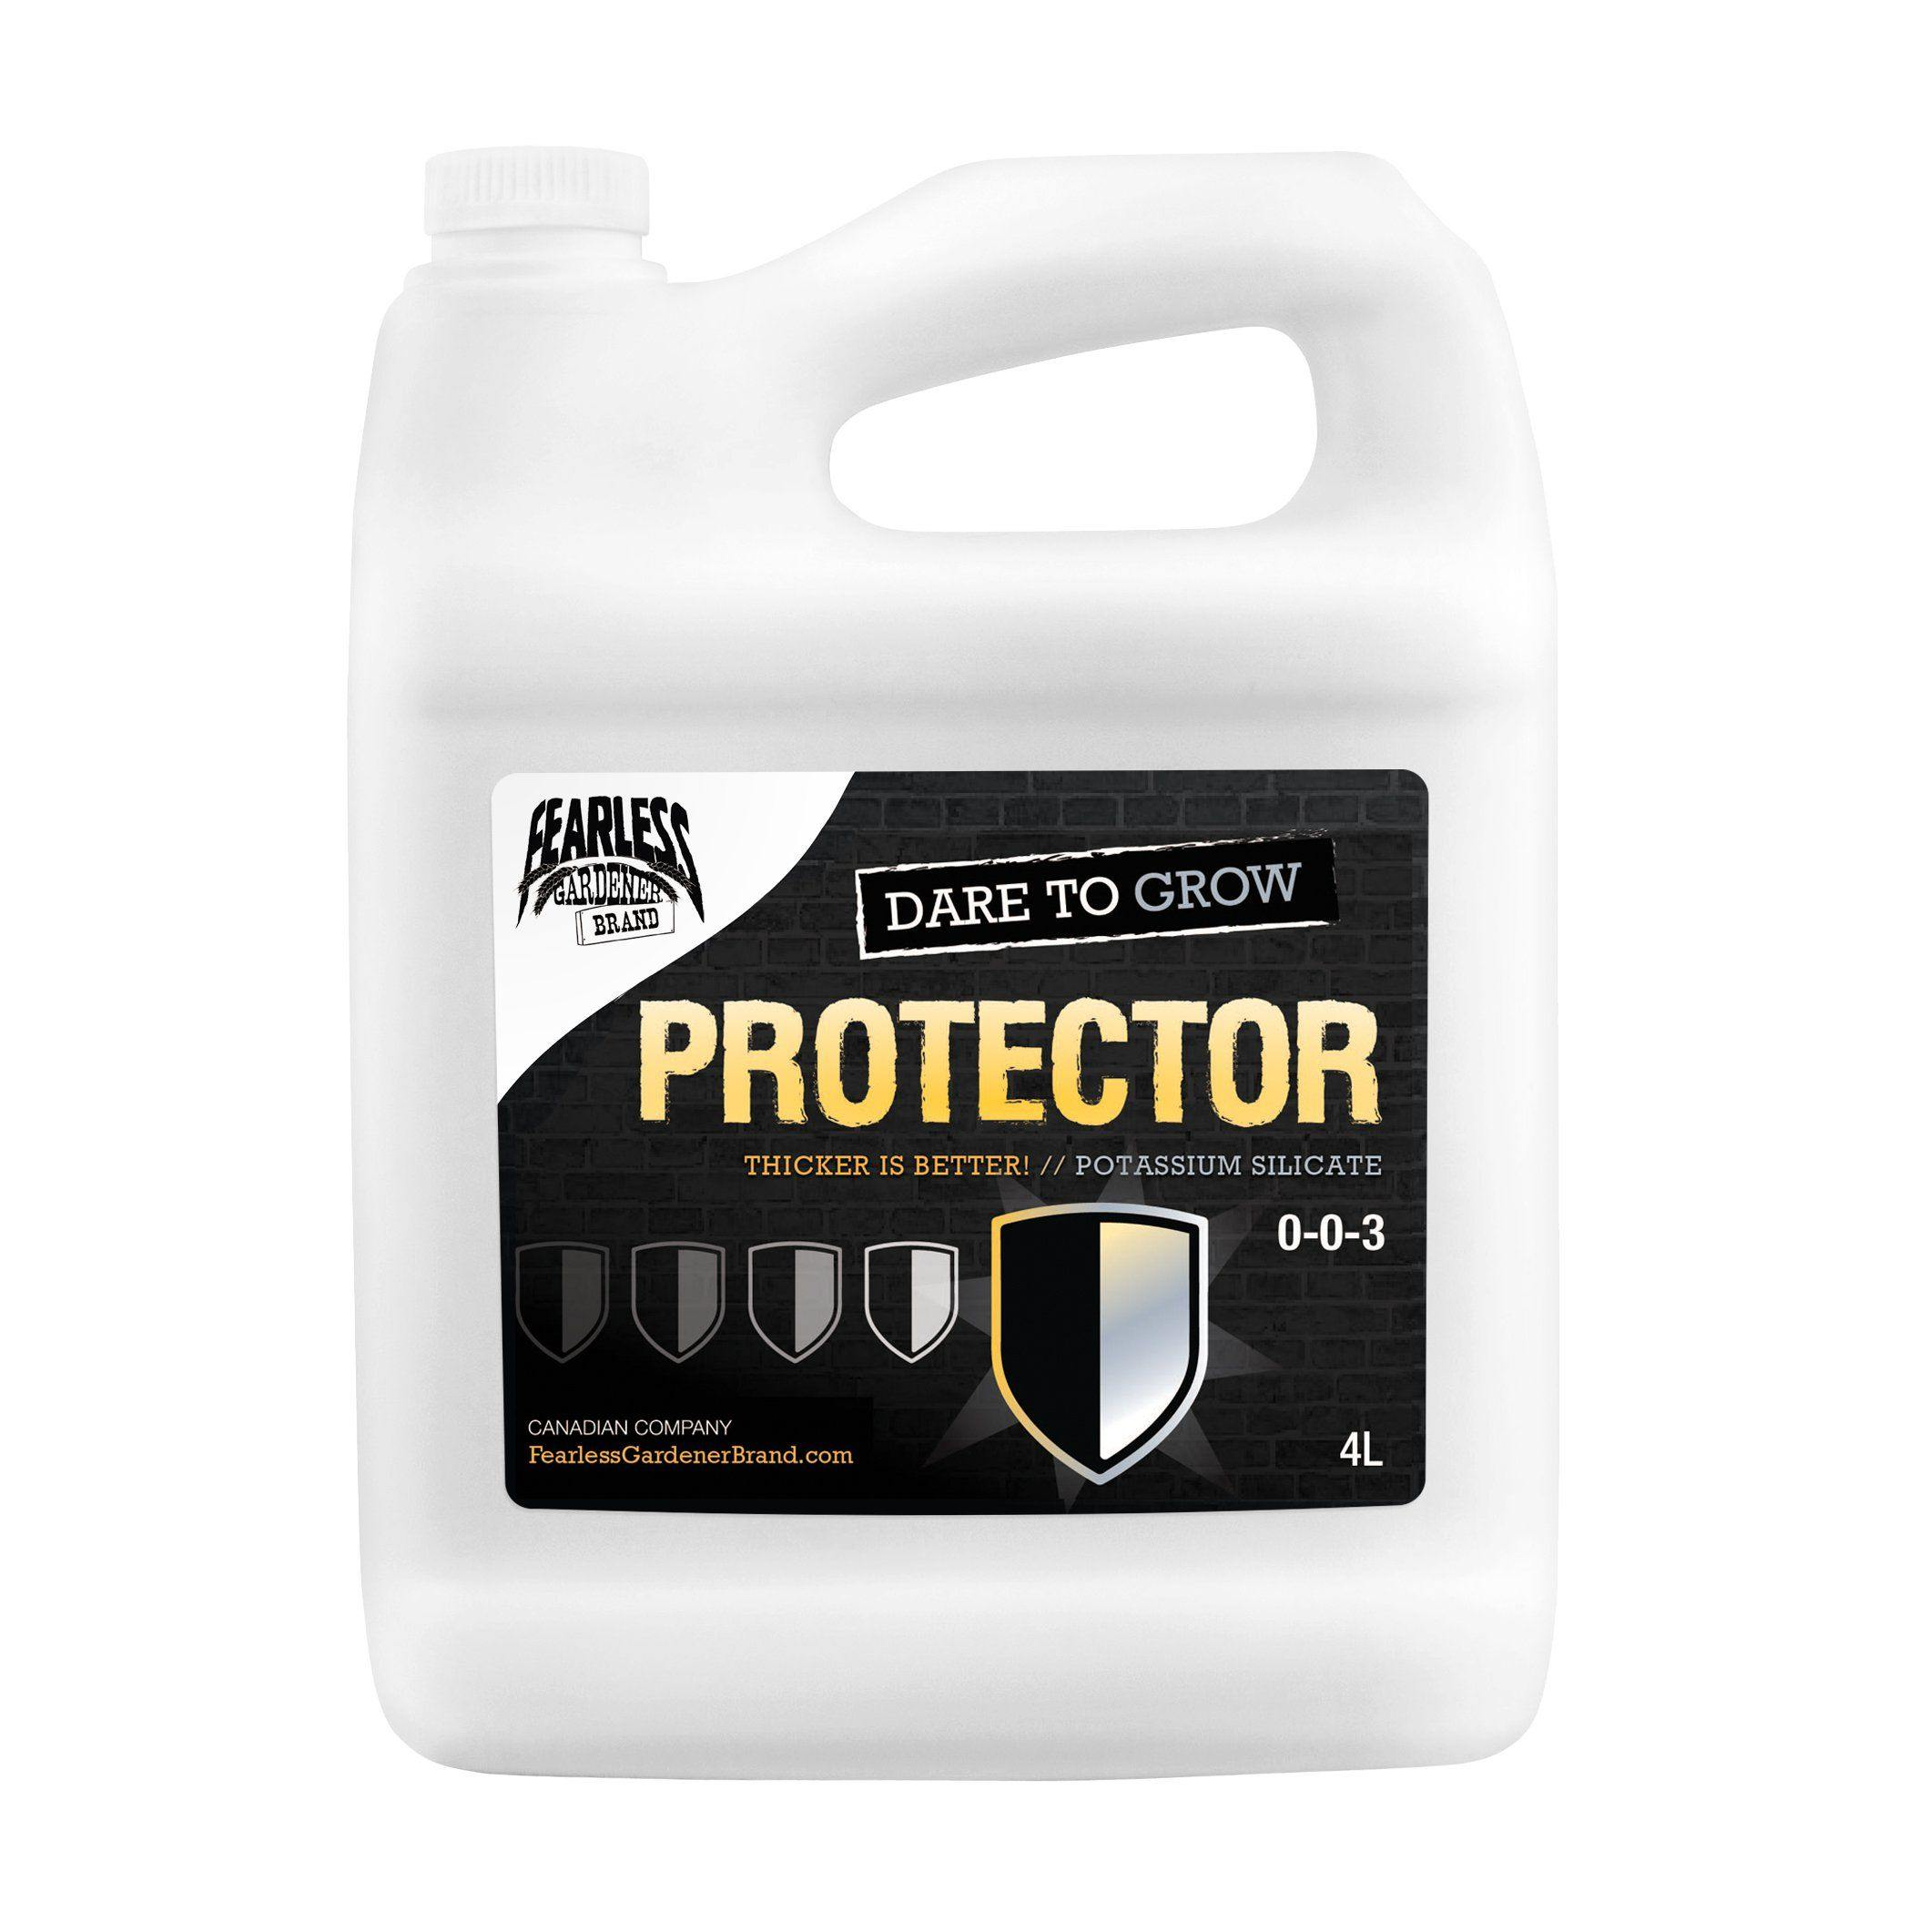 Dare To Grow - Protector [0-0-3] | Fearless Gardener Brand